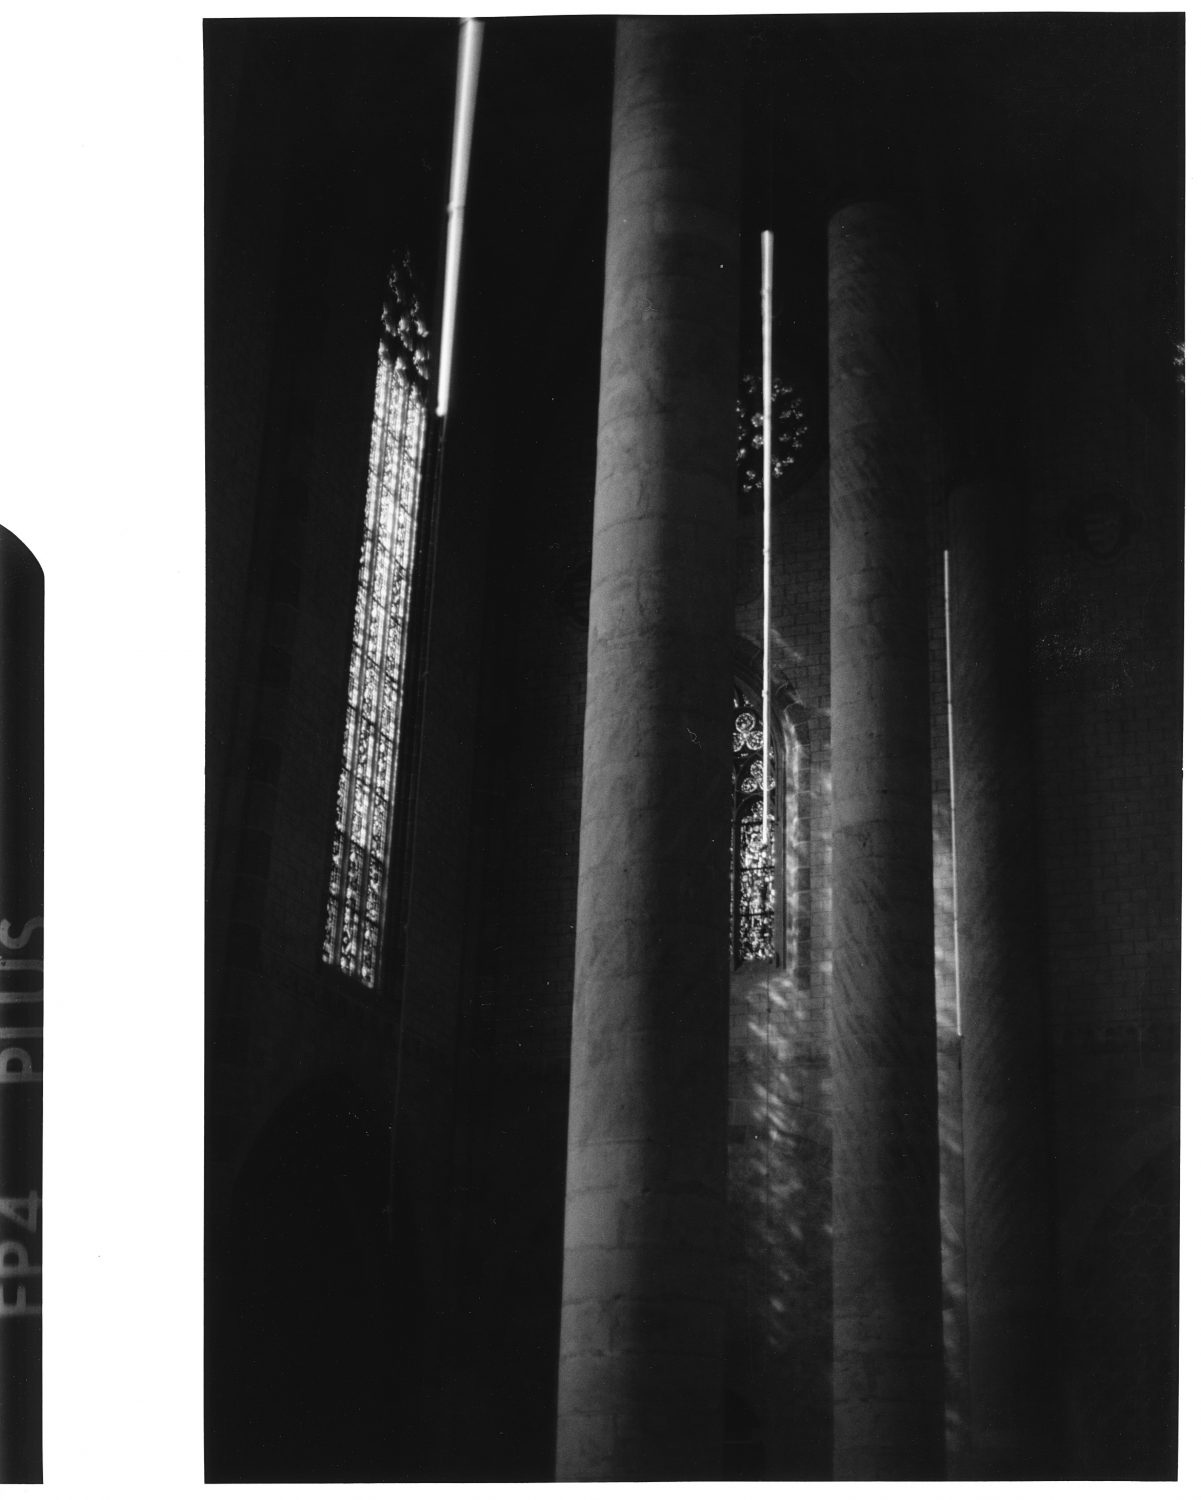 ILFORD MGRCDL - Print 1, normal contrast